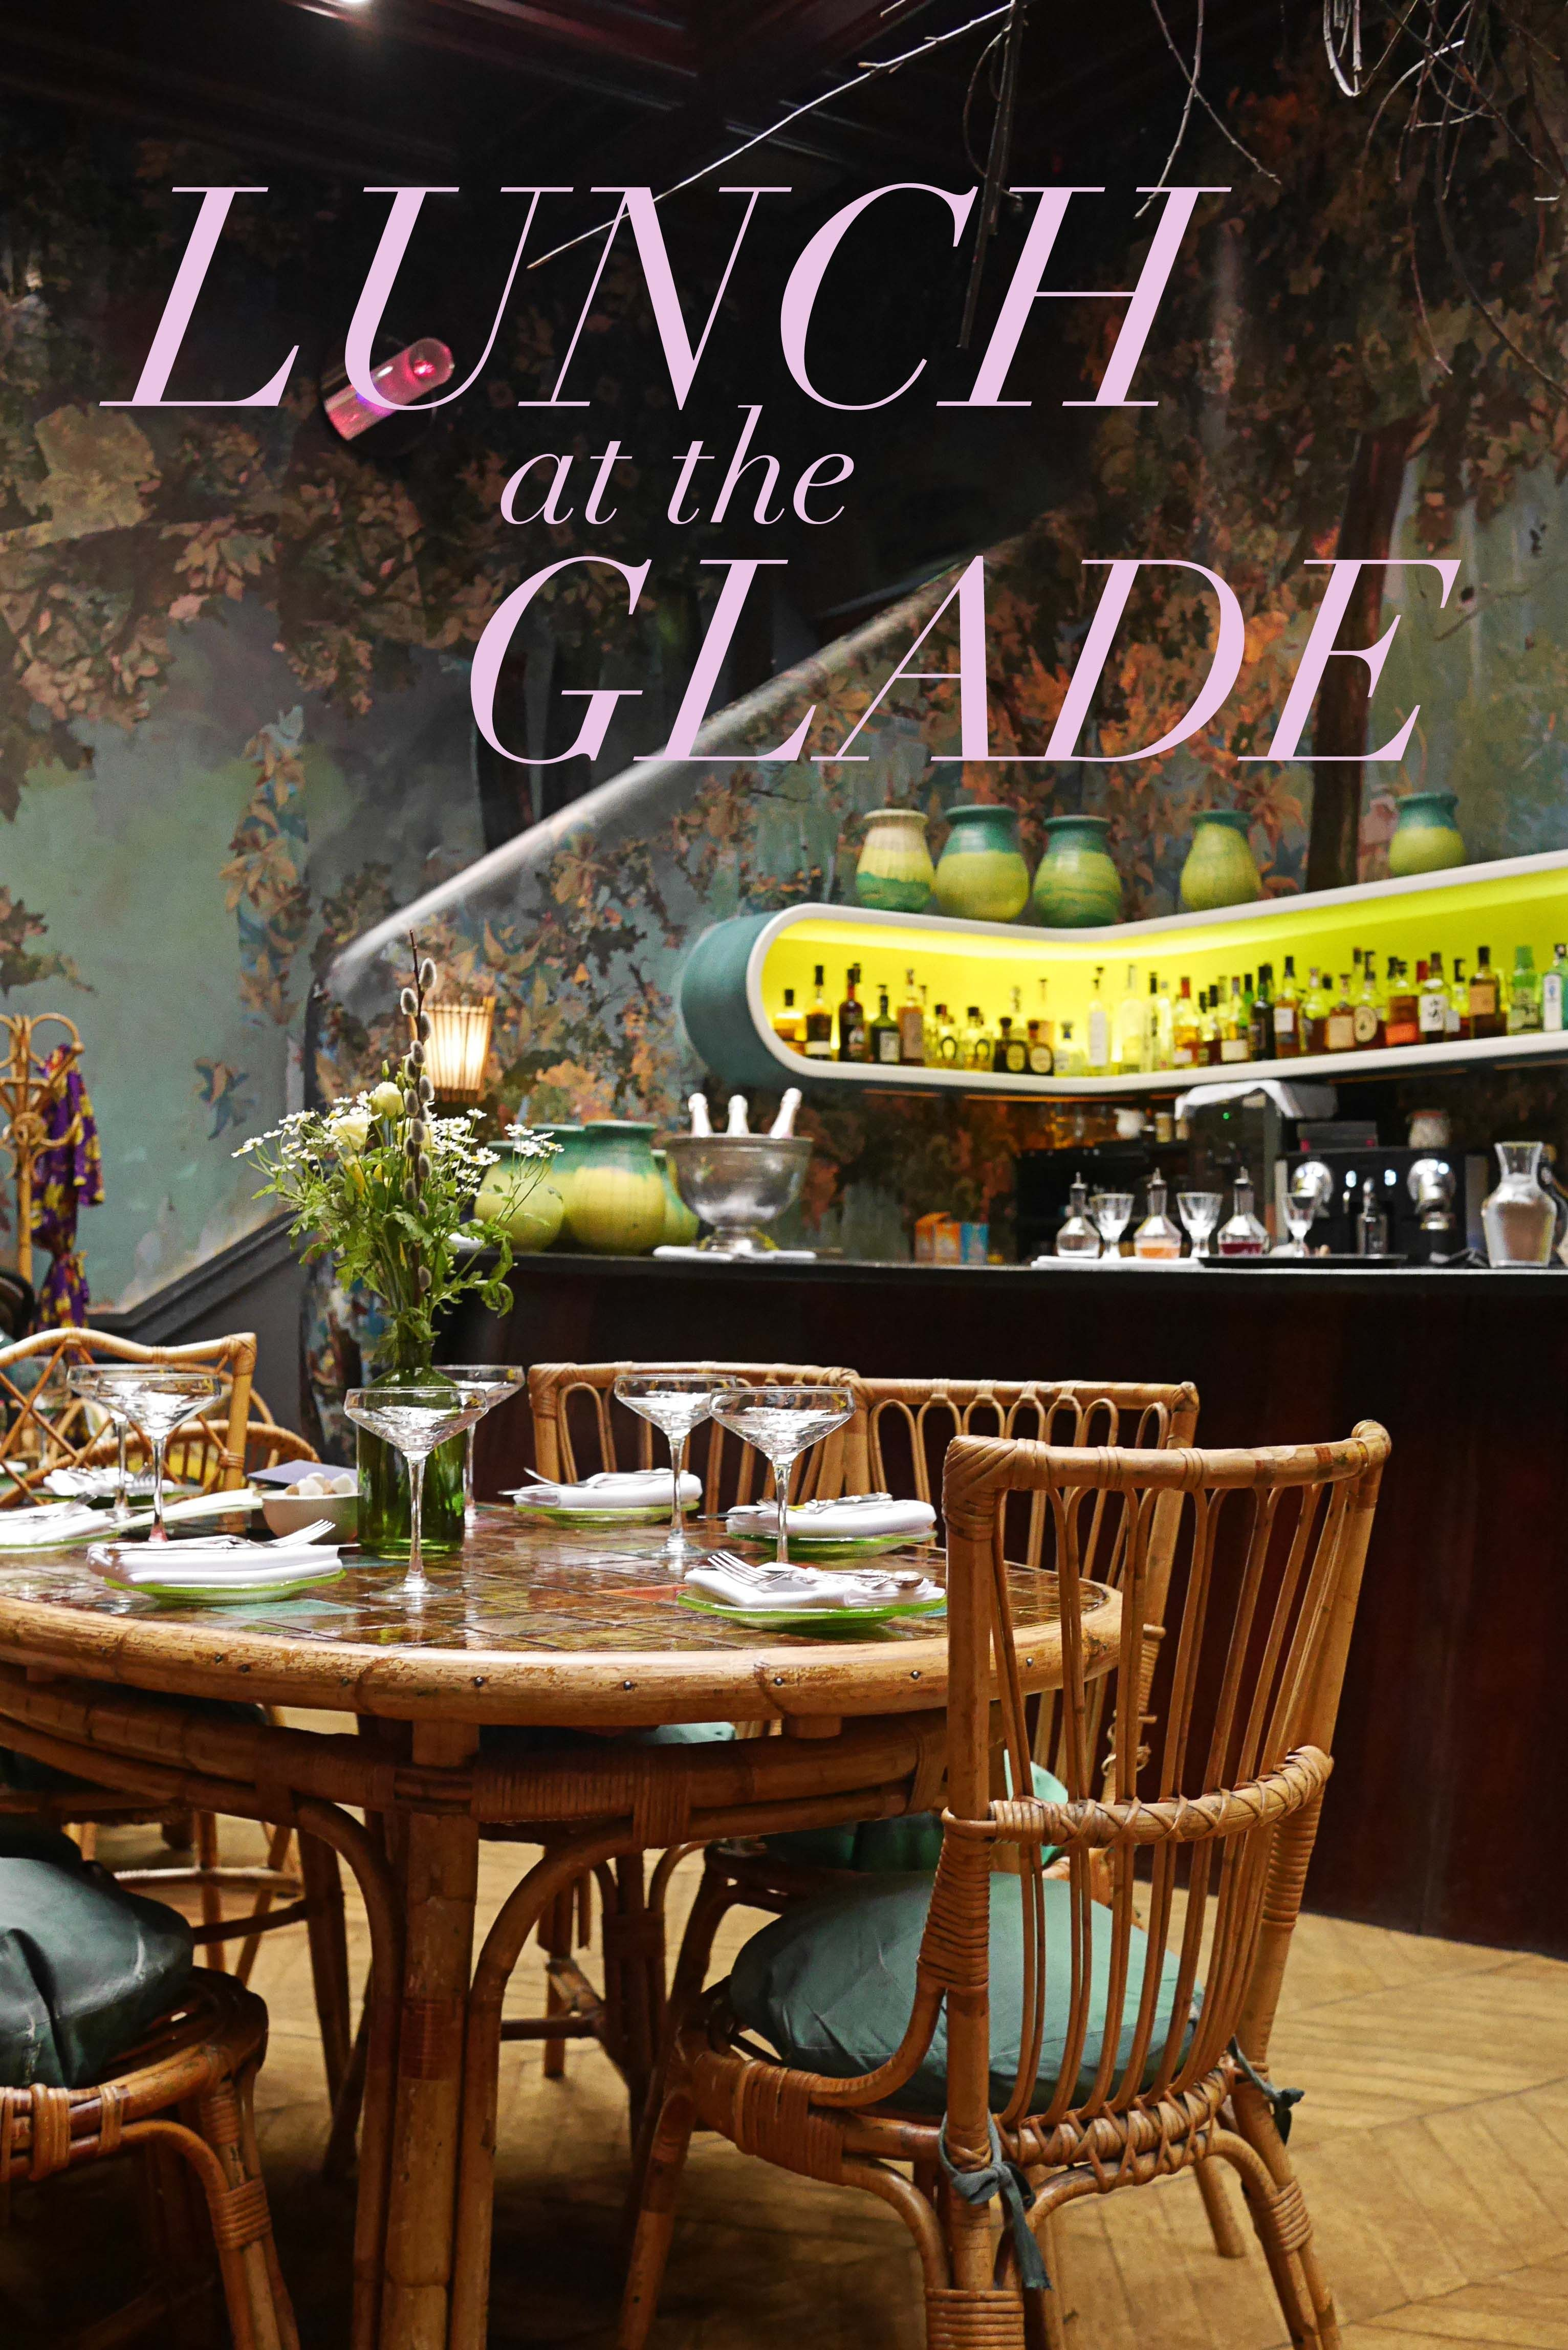 Food Coma Sketch London Restaurant Lunch Glade